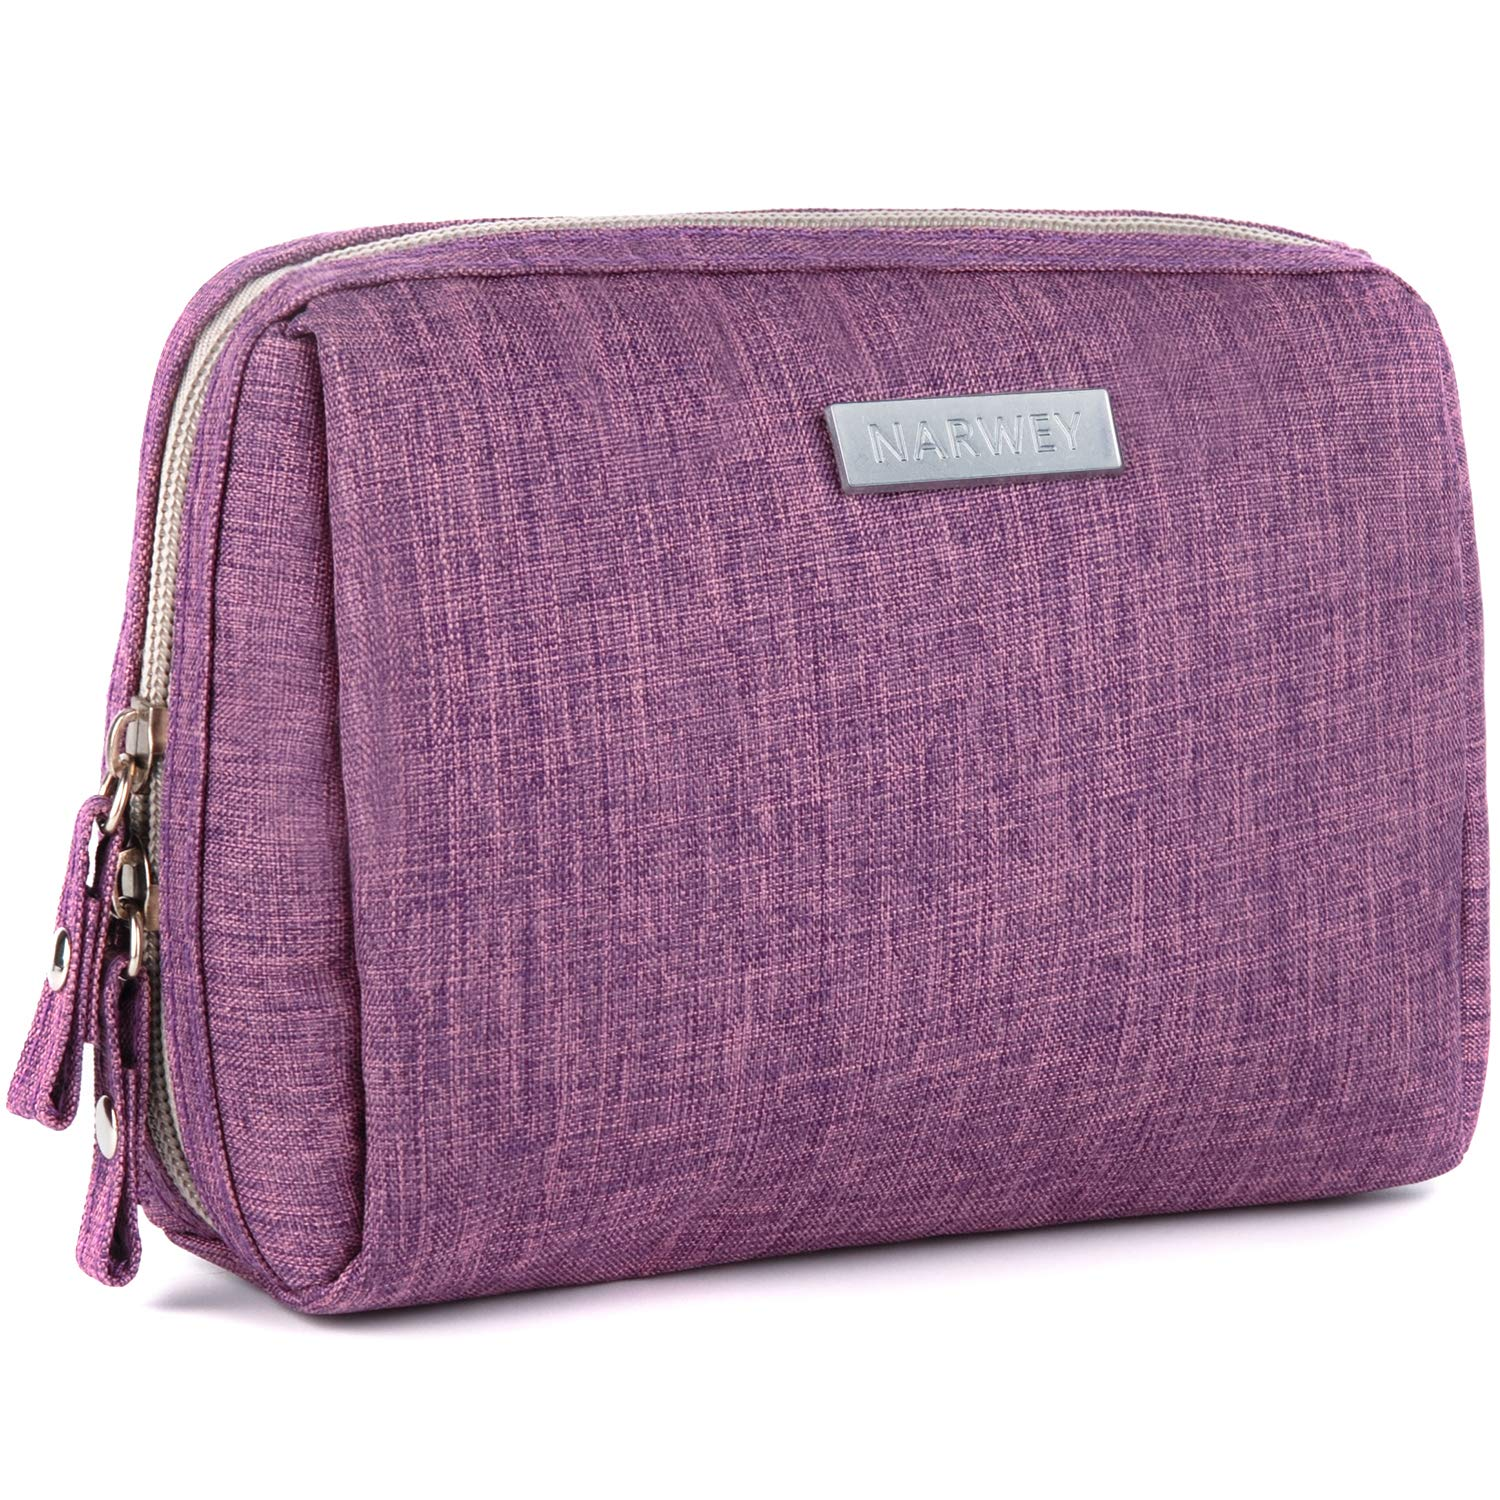 Small Makeup Bag for Purse Travel Makeup Pouch Mini Cosmetic Bag for Women Girls (Rectangle-Purple)